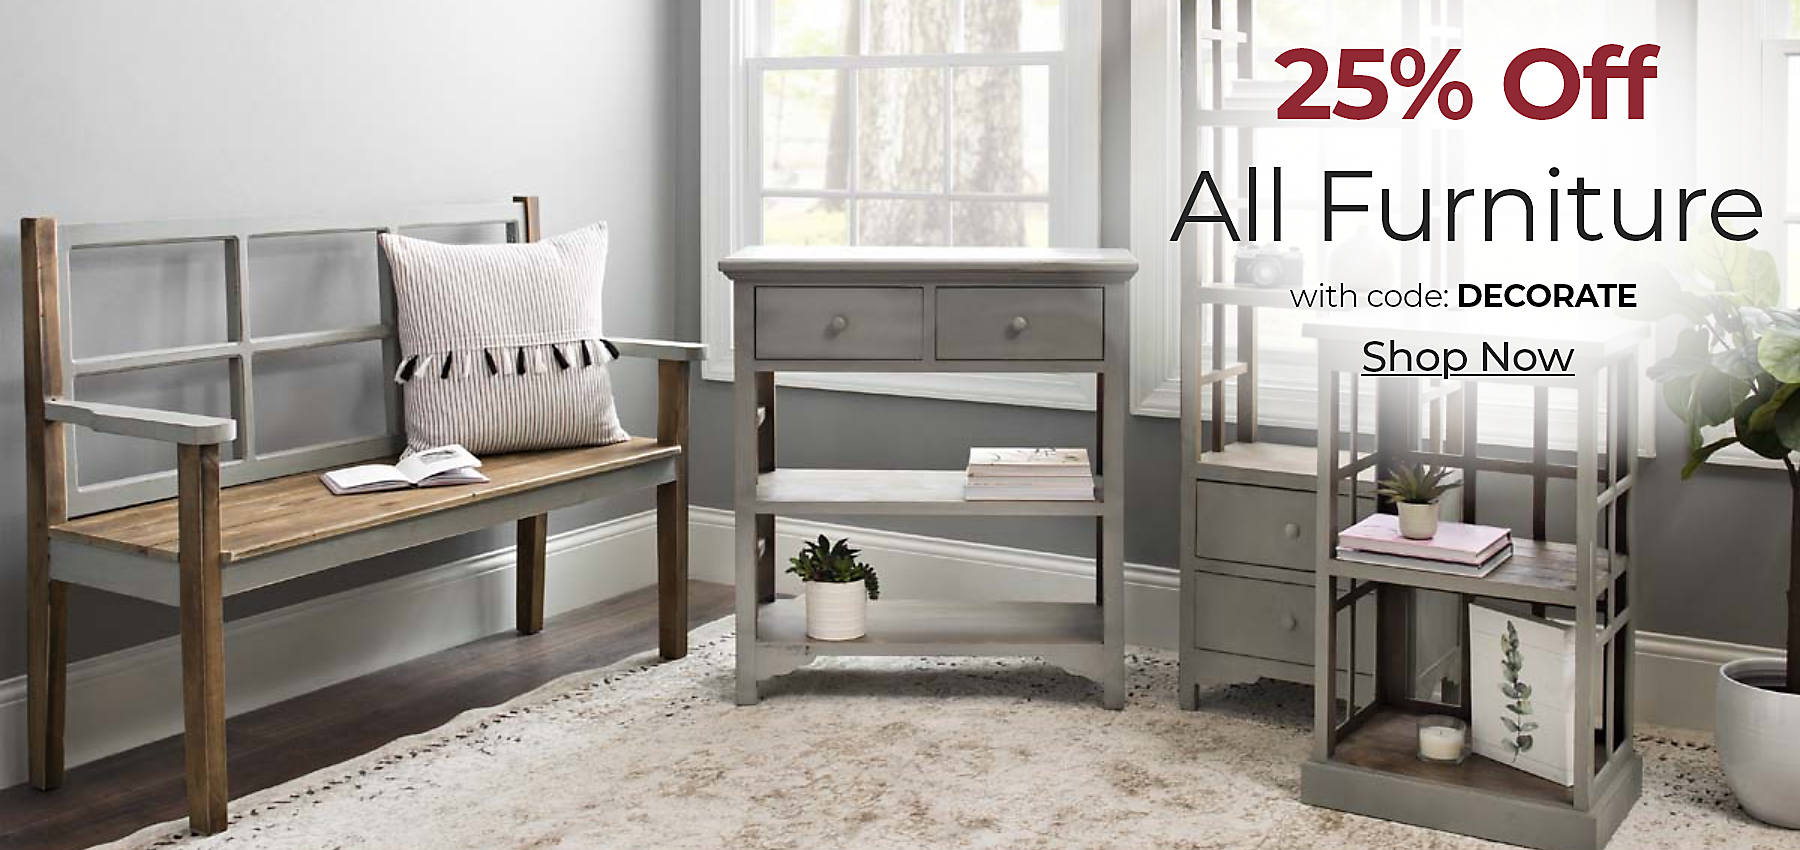 All Furniture 25% off with code DECORATE